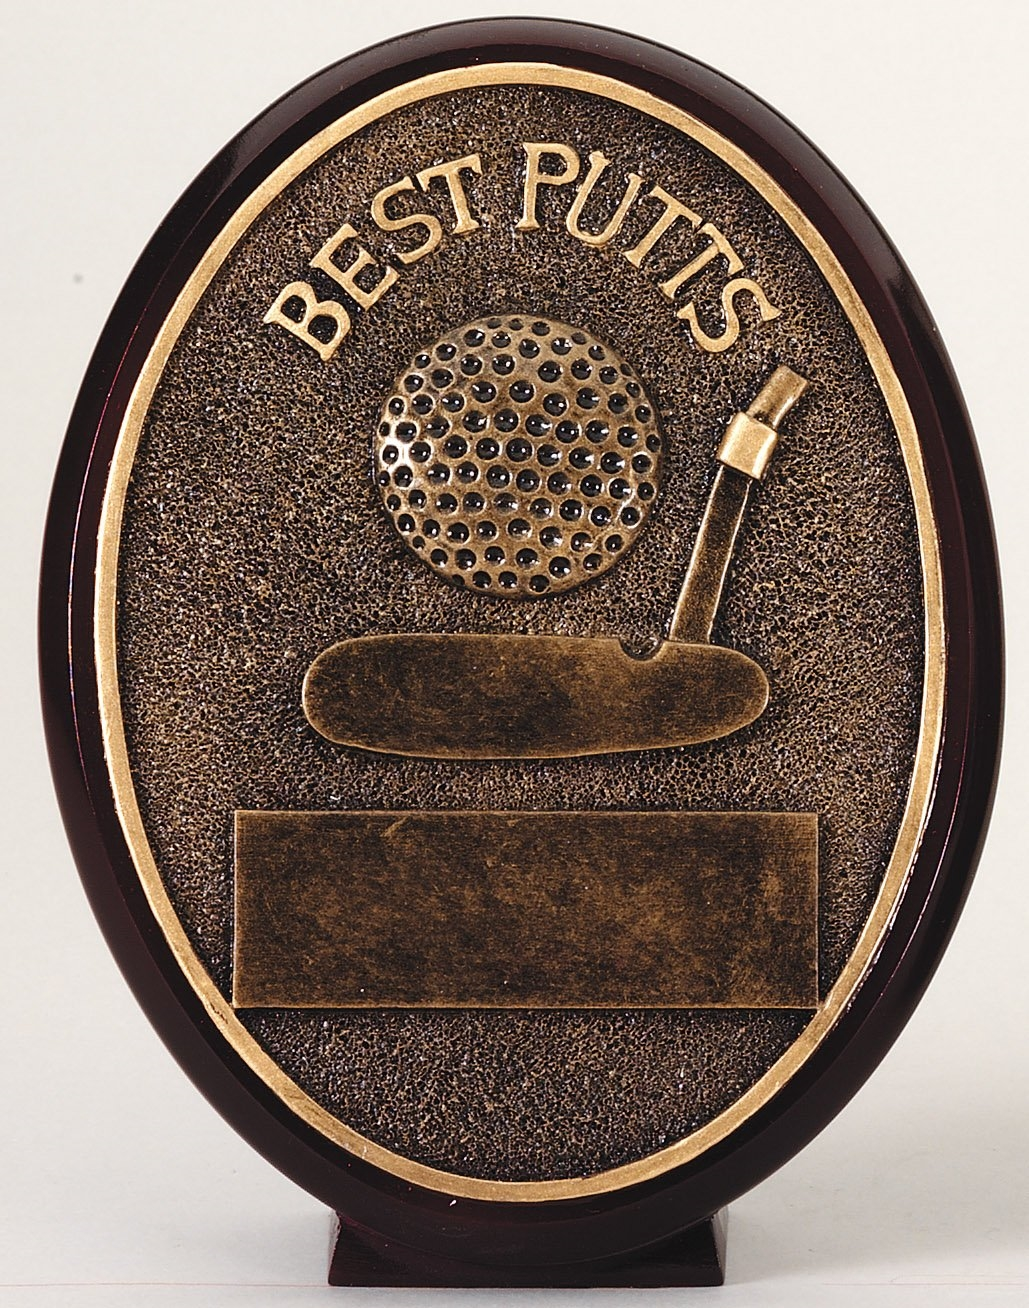 Best Putts Golf Resin Trophy Plaque